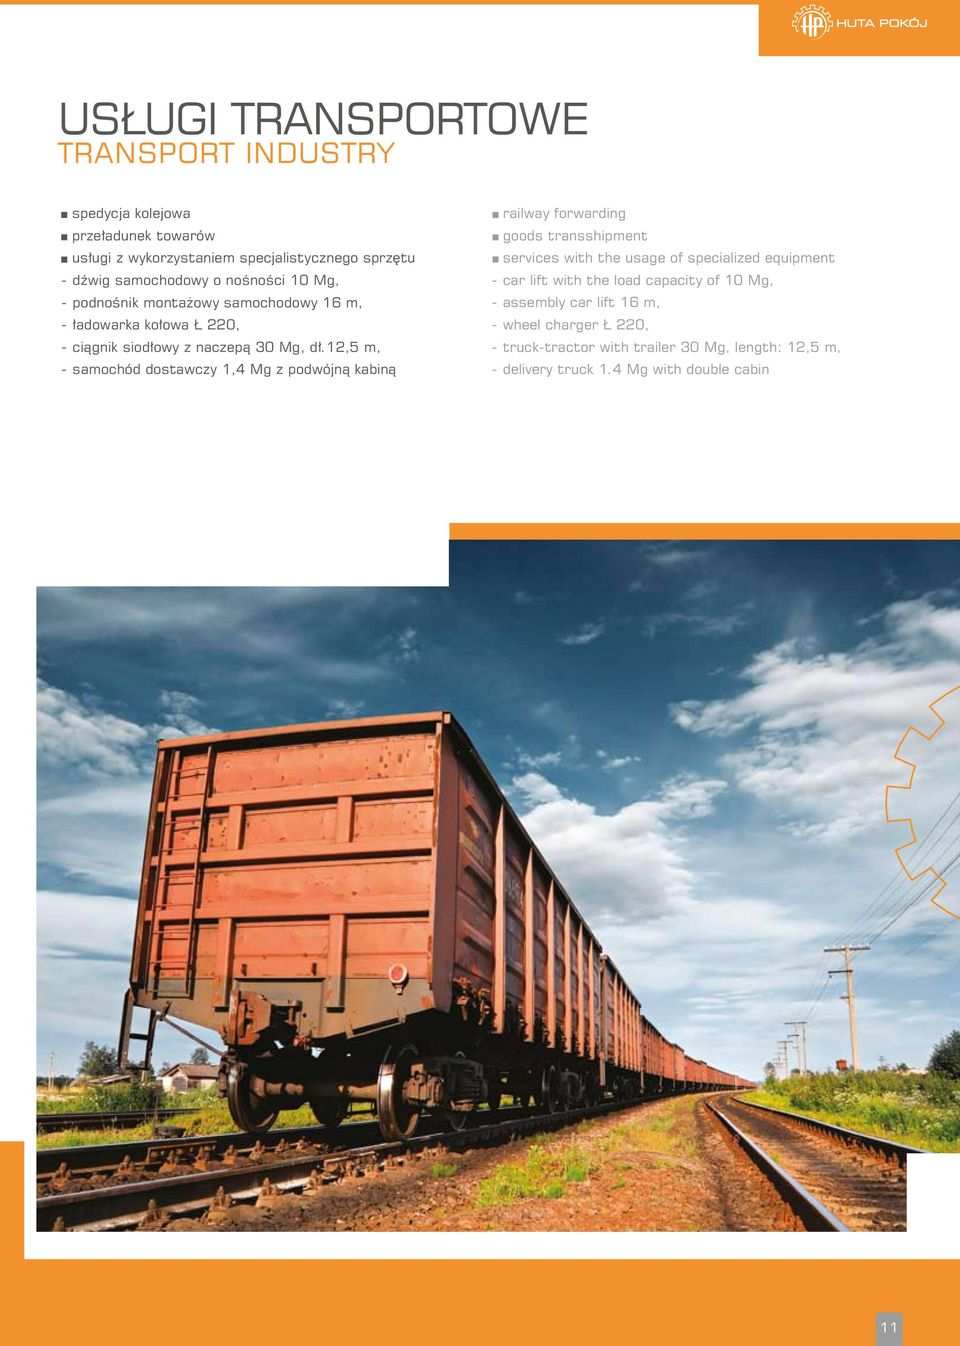 12,5 m, - samochód dostawczy 1,4 Mg z podwójną kabiną railway forwarding goods transshipment services with the usage of specialized equipment - car